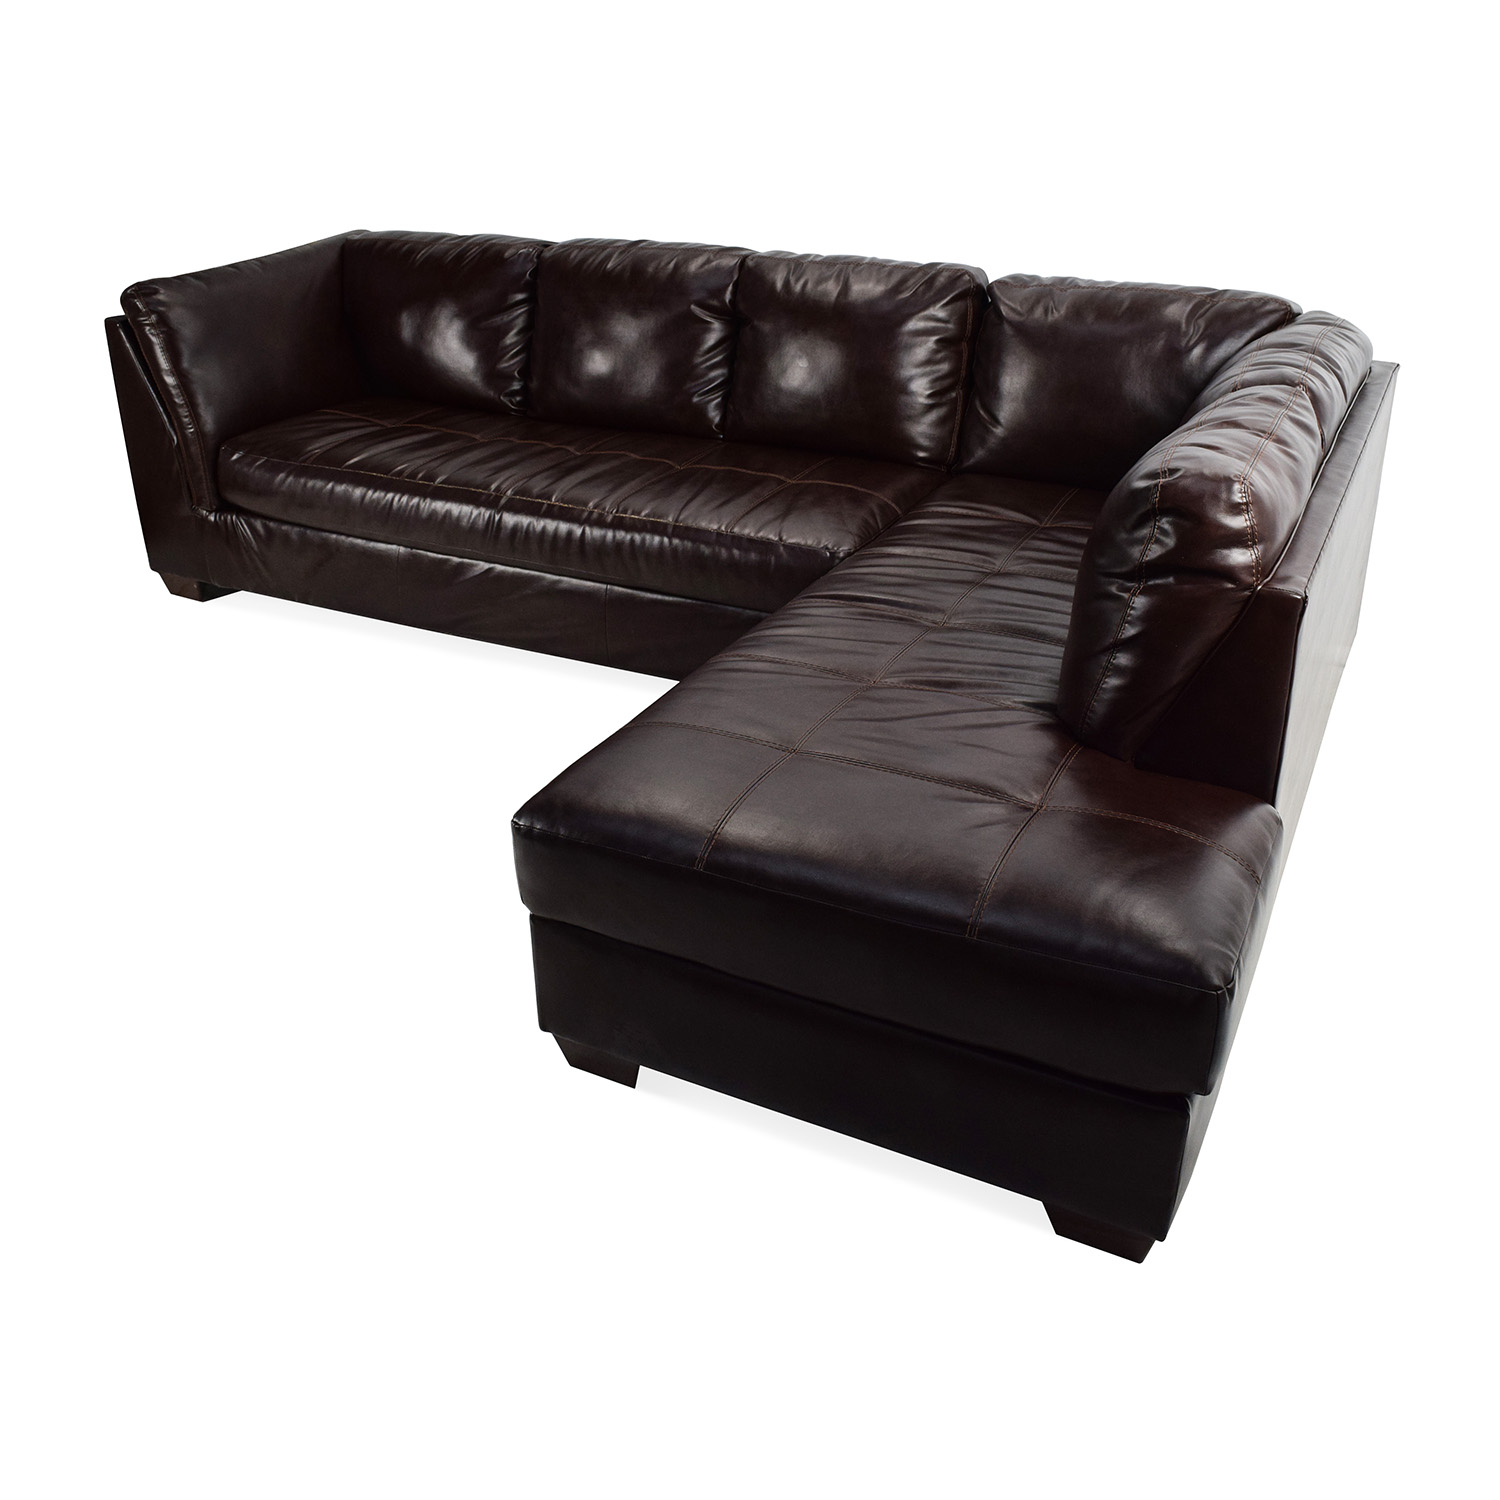 dark brown sectional sofa chaise black leather suites 75% off - jennifer convertibles ...